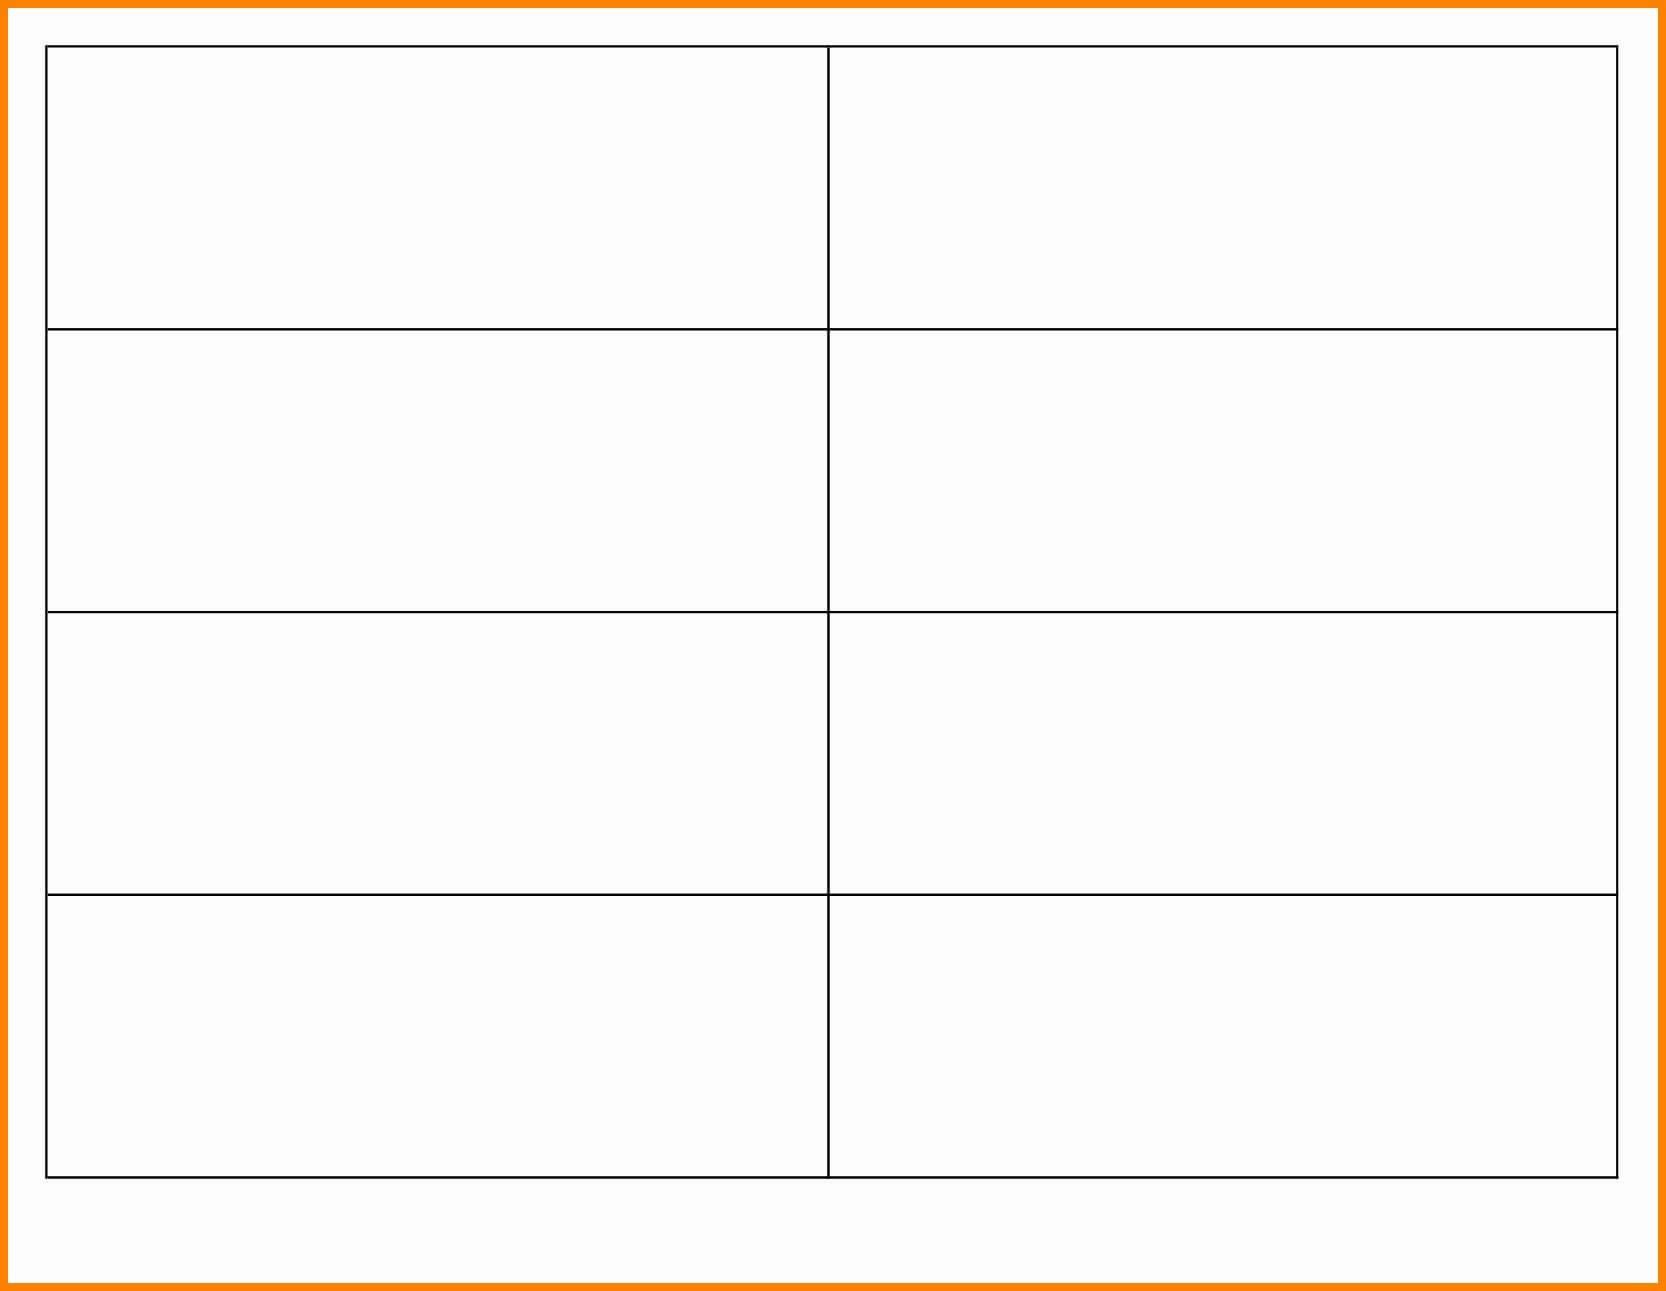 013 Flash Card Template Word Remarkable Ideas Ms Microsoft Within Flashcard Template Word